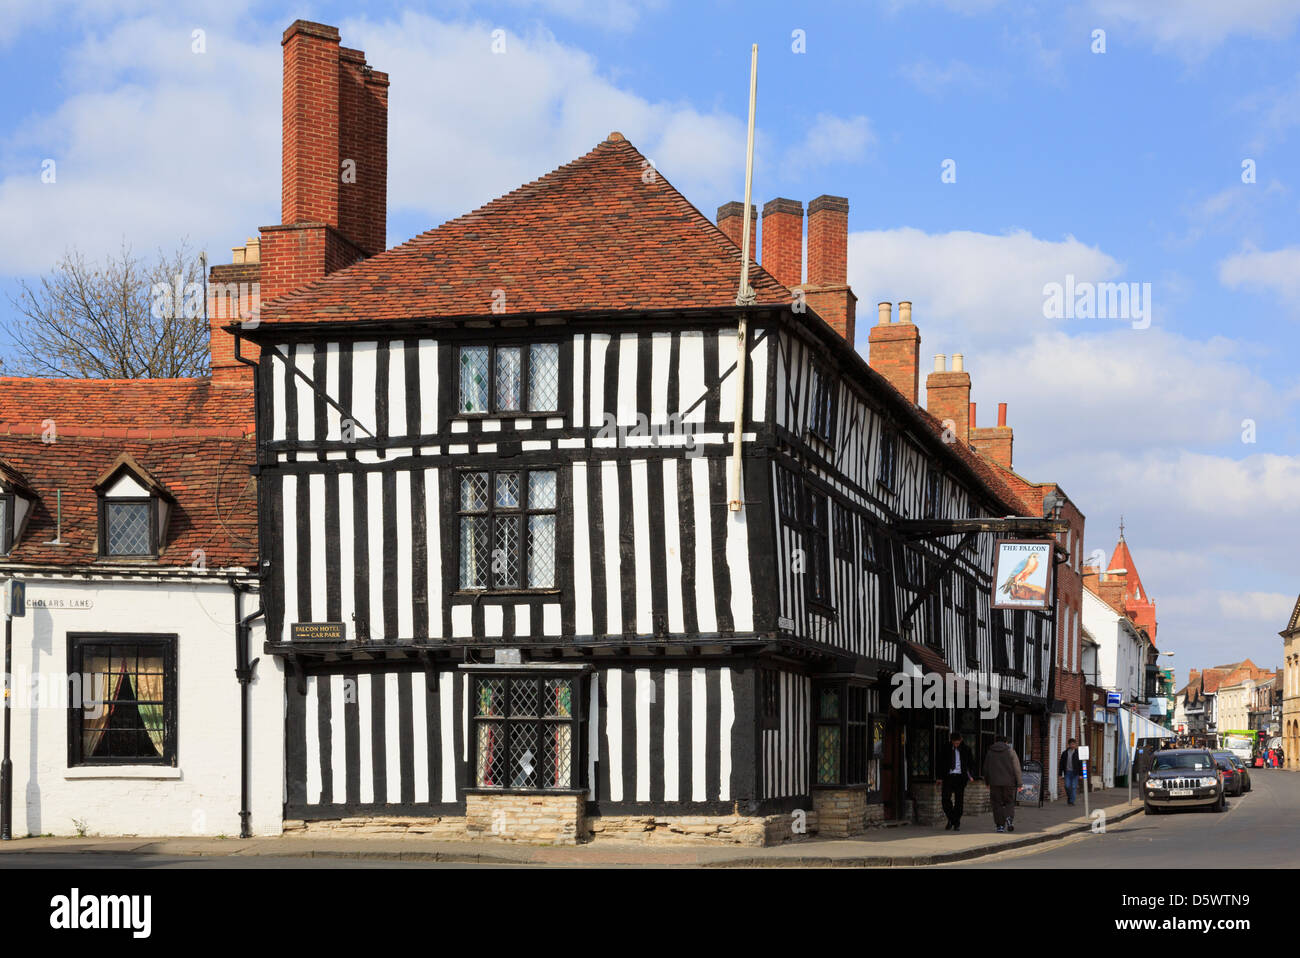 The Legacy Falcon Hotel is a 16th century black and white timbered building in Chapel Street, Stratford-upon-Avon, - Stock Image